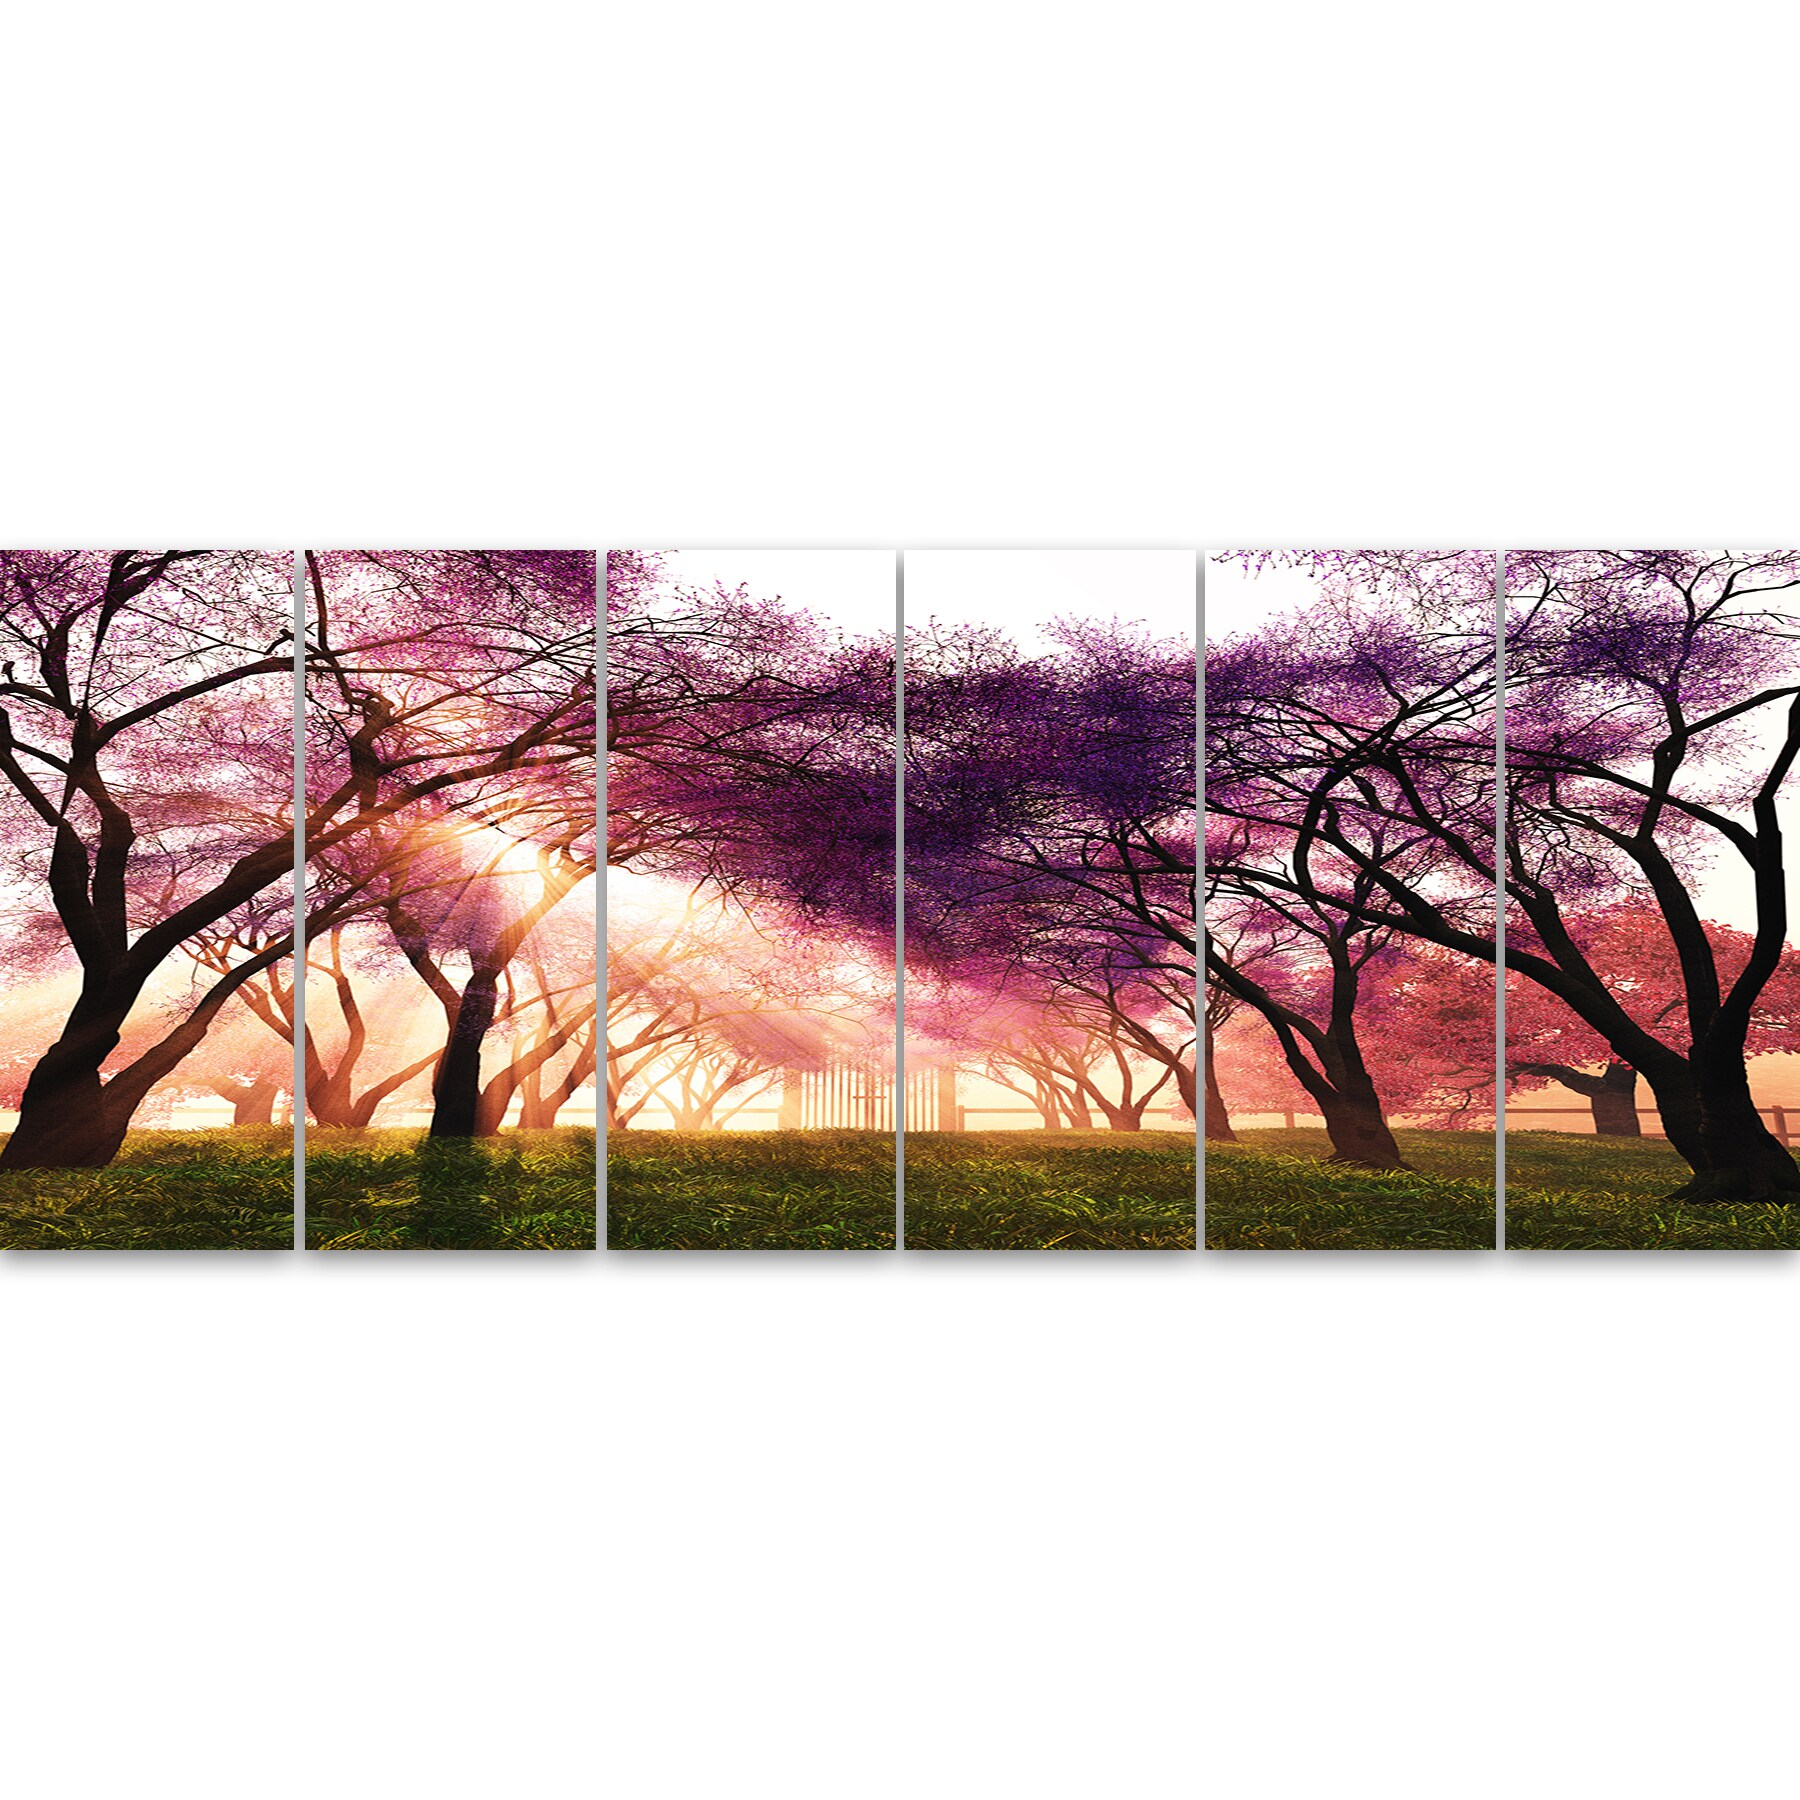 Shop Designart Cherry Blossoms Japan Garden Landscape Metal Wall Art